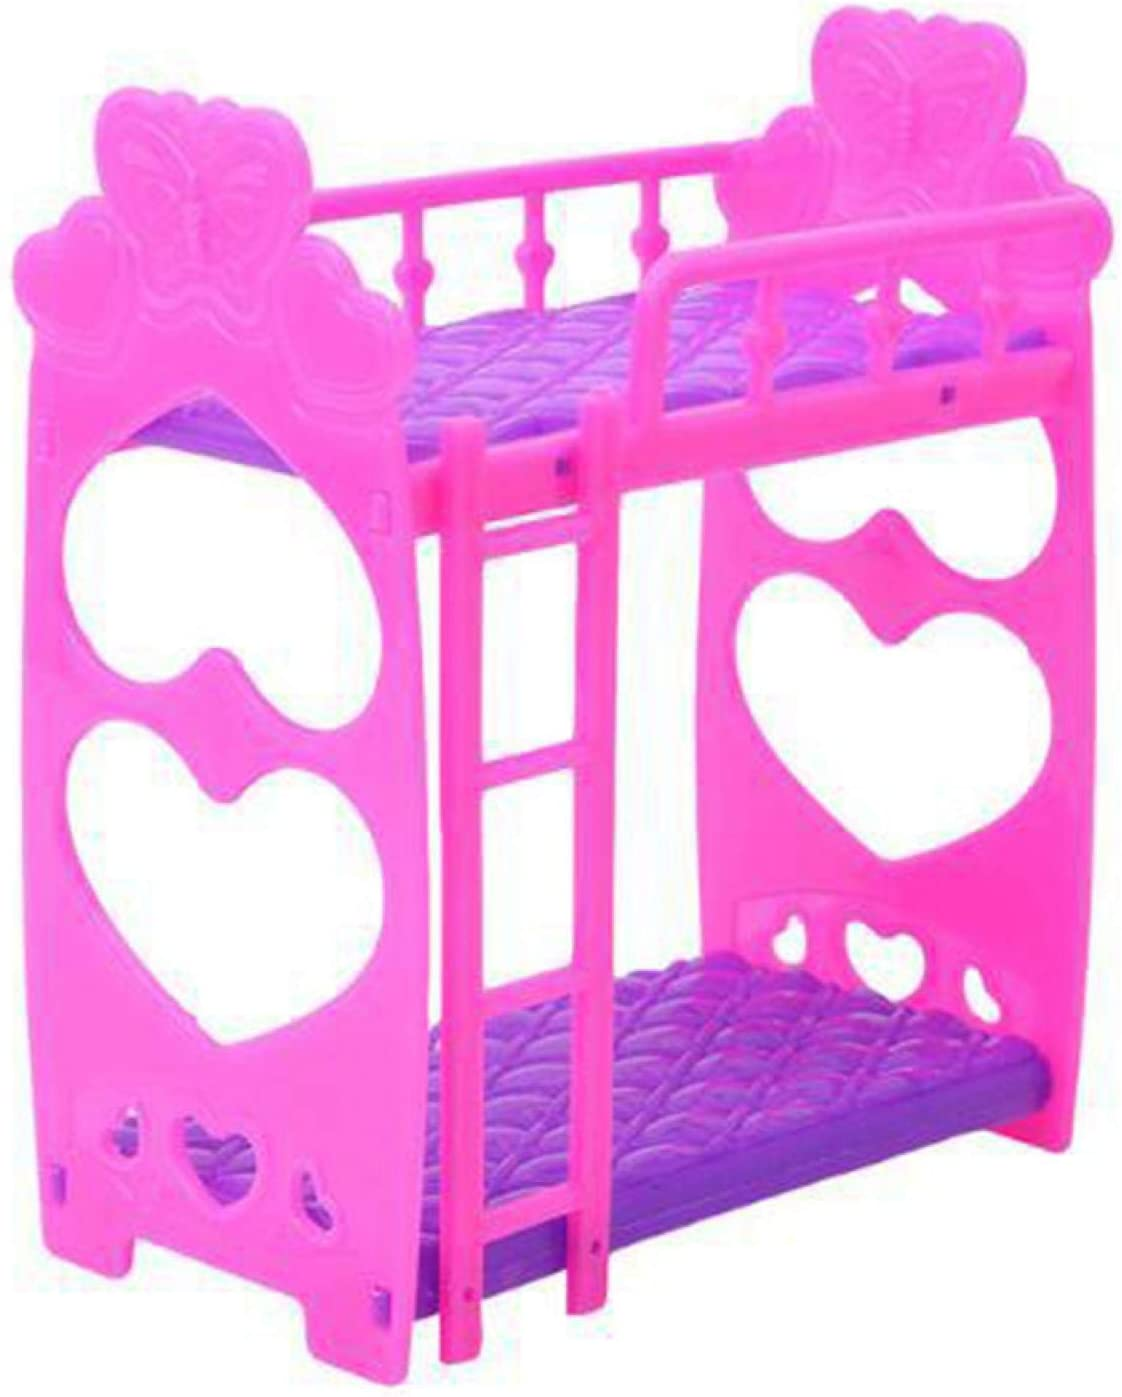 CALIDAKA Double Doll Bunk Bed, Doll Wooden Bunk Bed with Ladder, Bedroom Furniture Bed for Barbie Dolls Dollhouse, Stackable Purple Wood Bunk Bed for Dolls, Girls Gift Dollhouse Toy